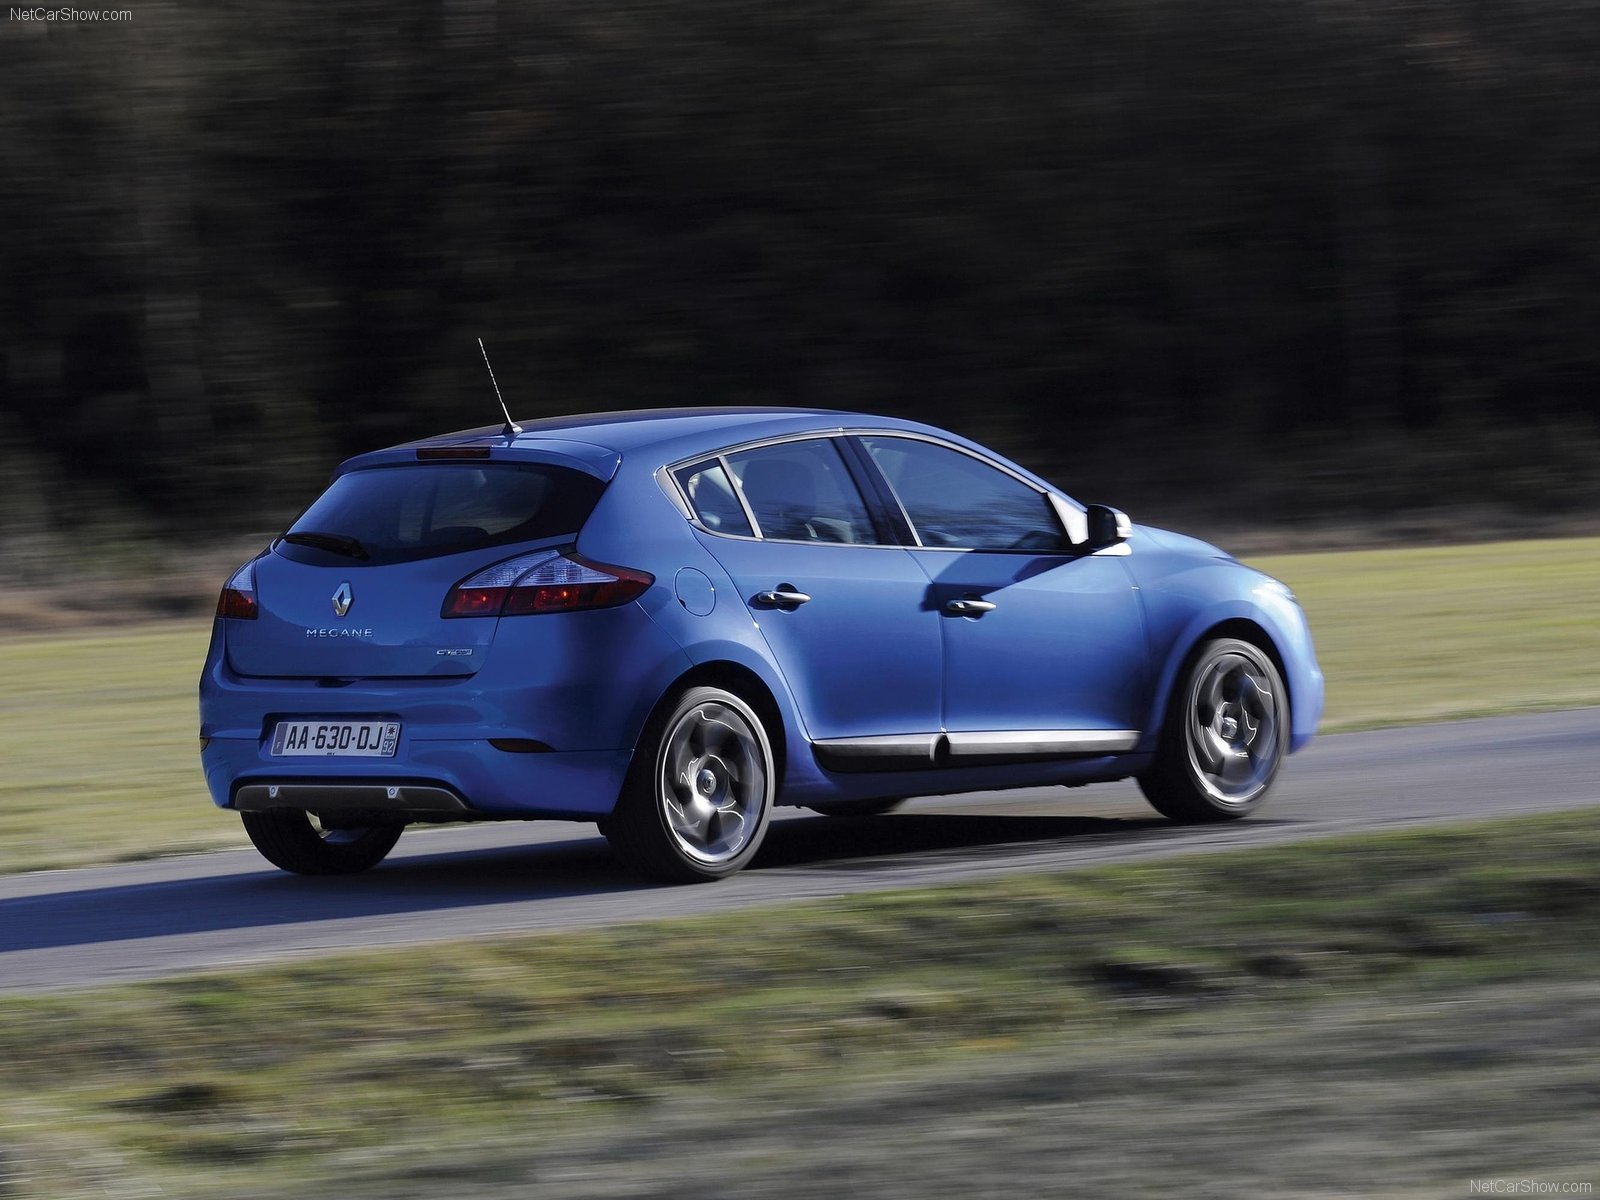 Le Meilleur My Perfect Renault Megane 3Dtuning Probably The Best Ce Mois Ci